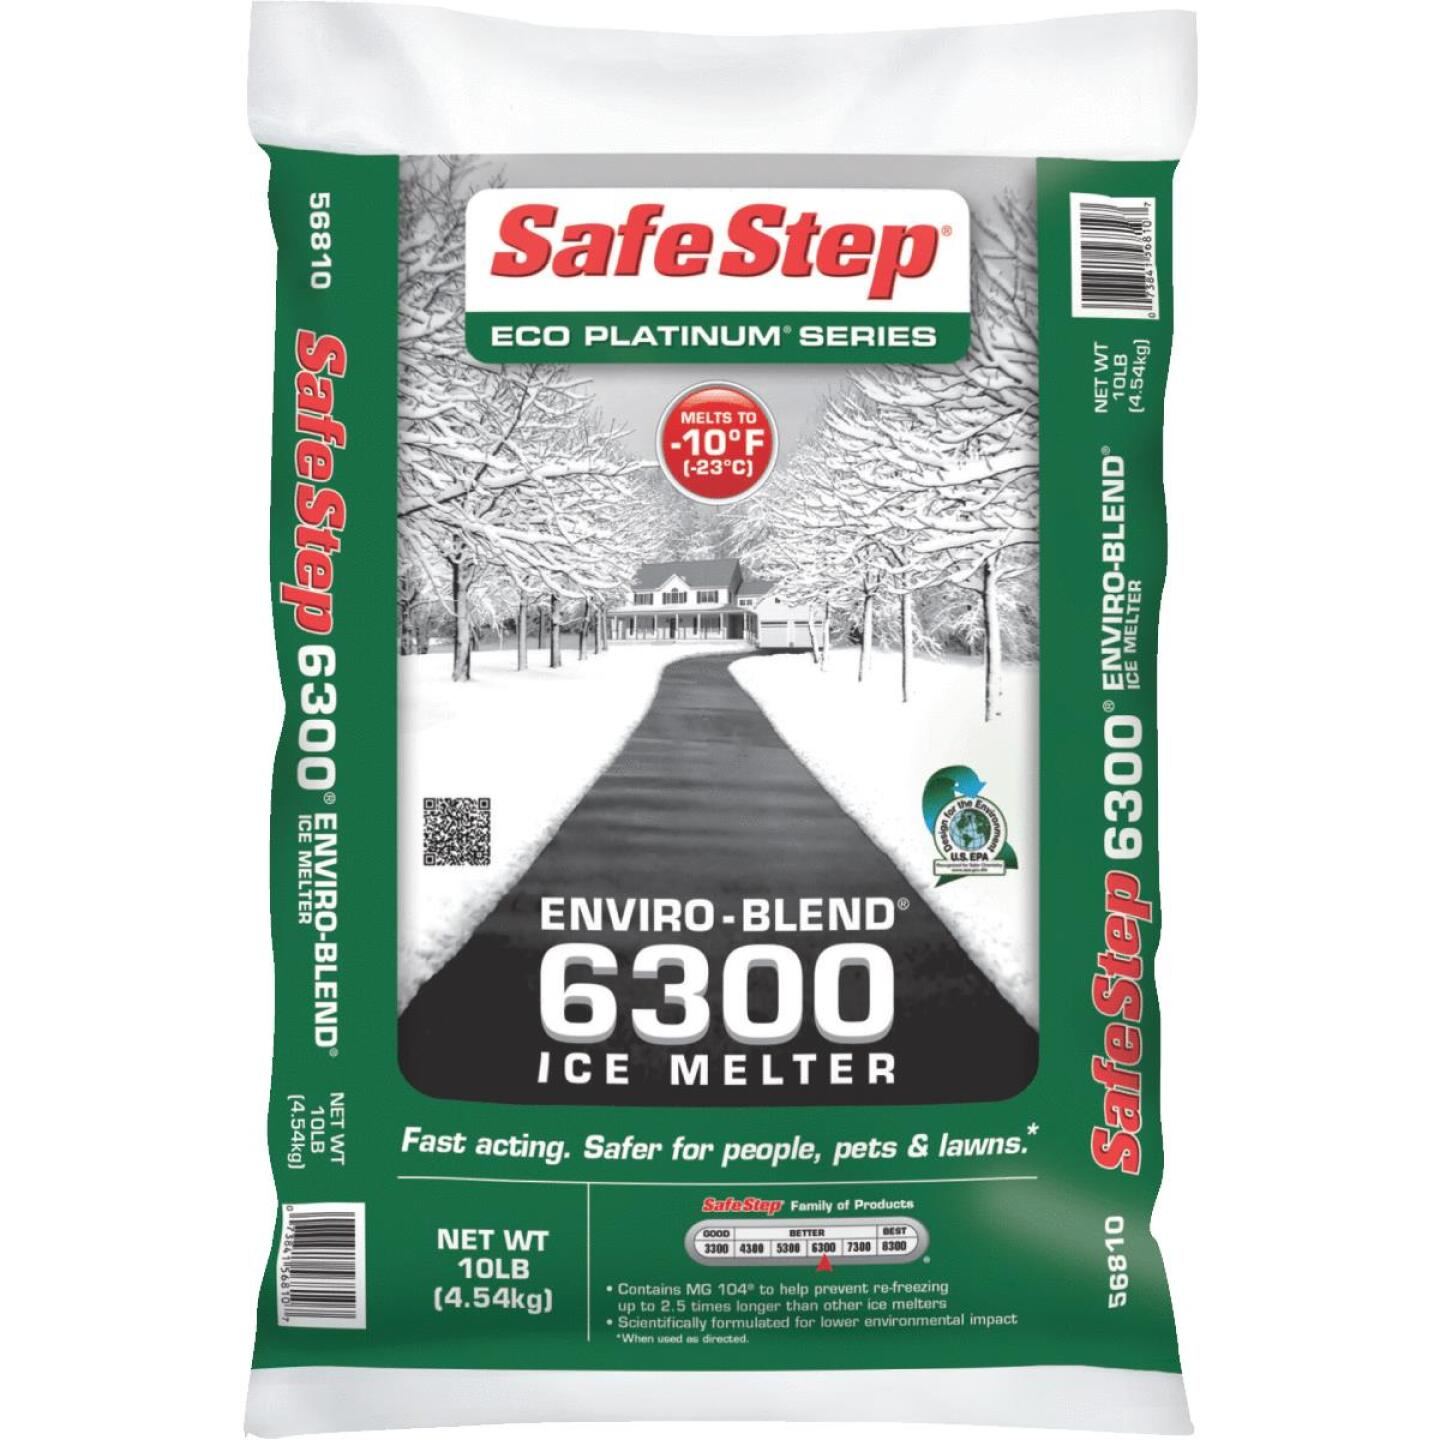 Safe Step Enviro-Blend 6300 10 Lb. Ice Melt Pellets Image 1